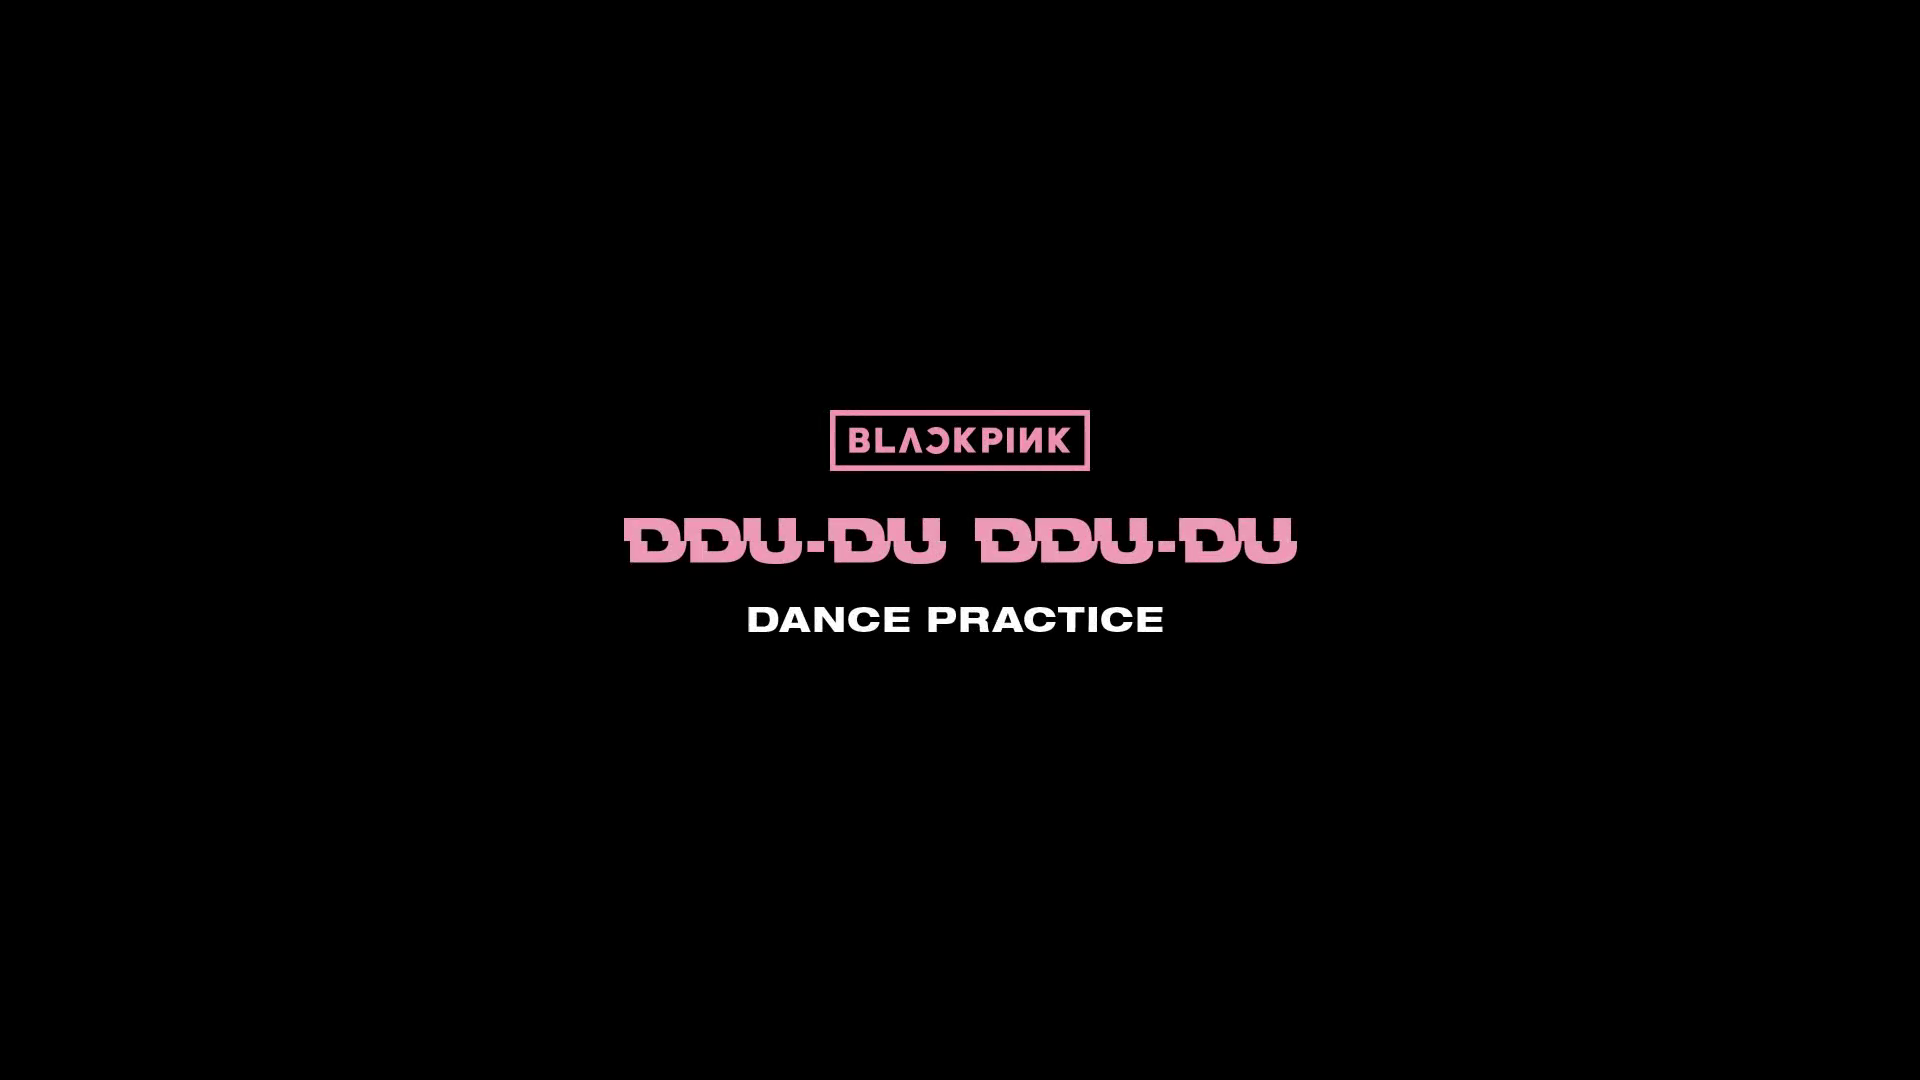 [OFFICIAL] 180618 BLACKPINK – '뚜두뚜두' (DDU-DU DDU-DU) DANCE PRACTICE VIDEO (MOVING VER.)